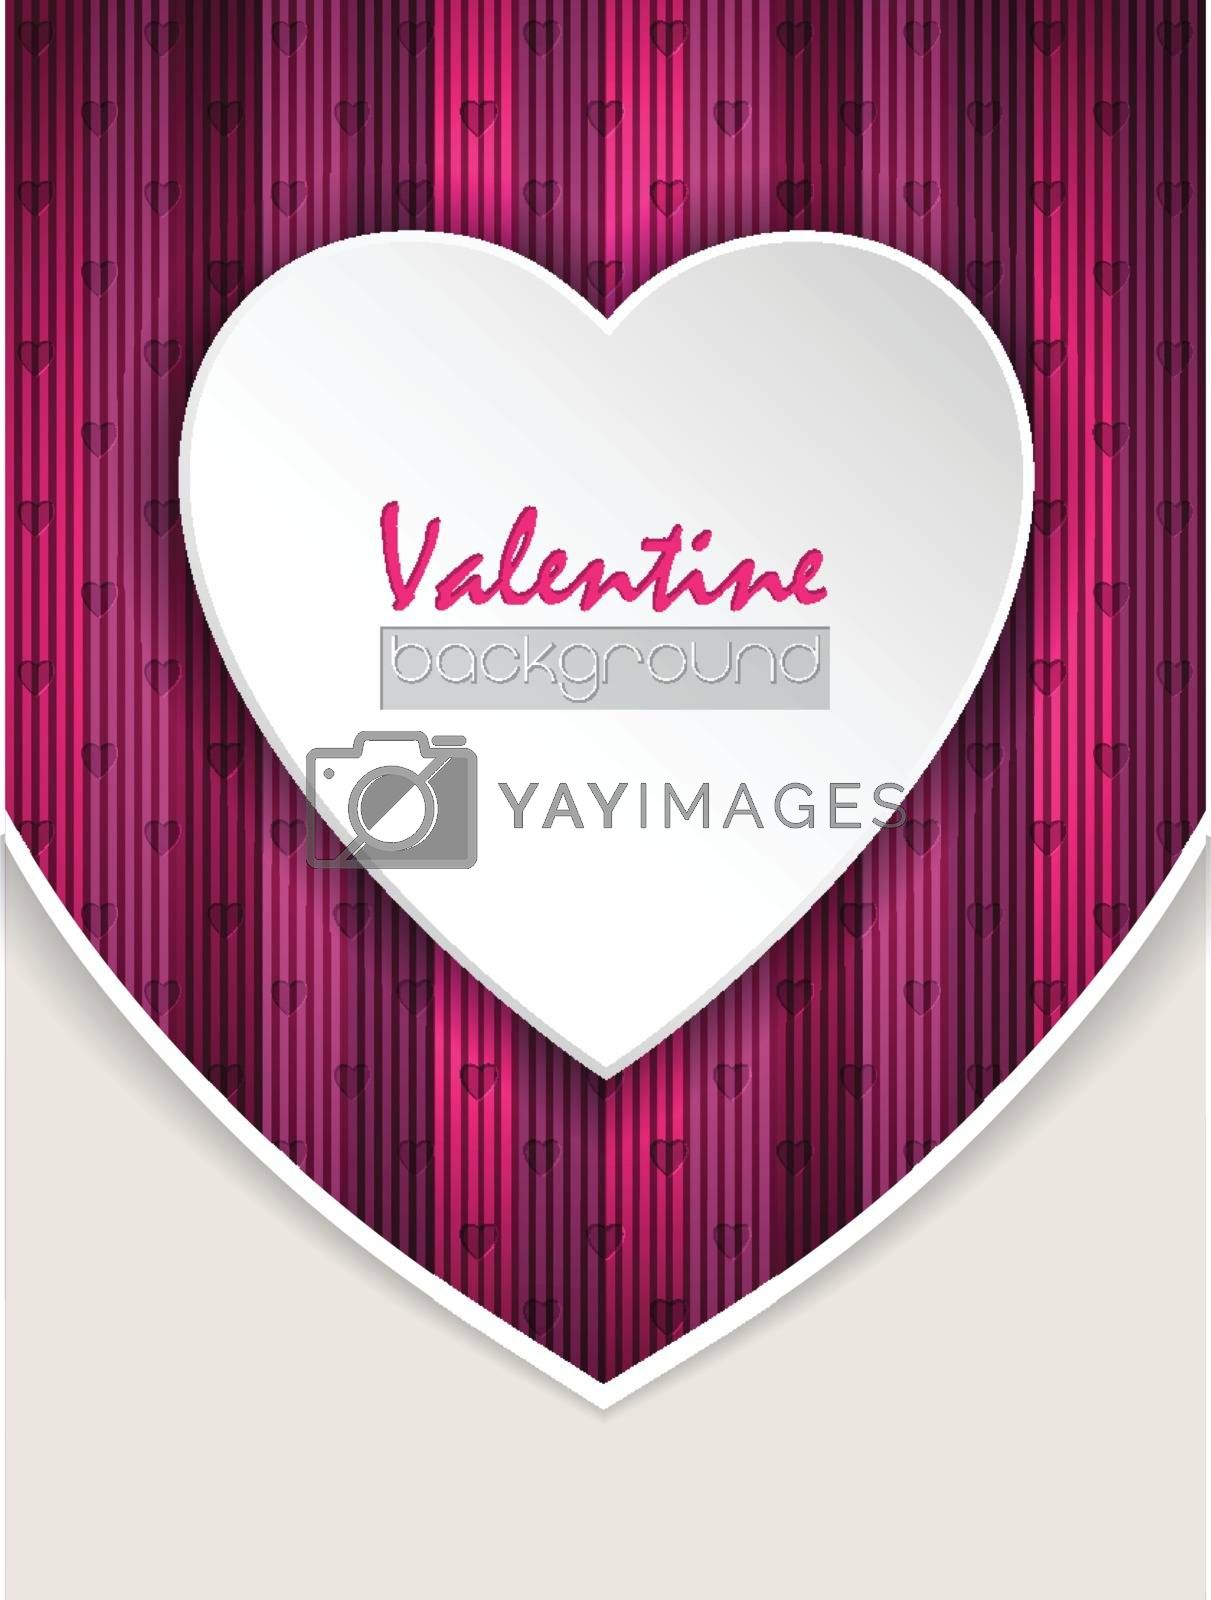 Valentine day greeting card with striped pink background